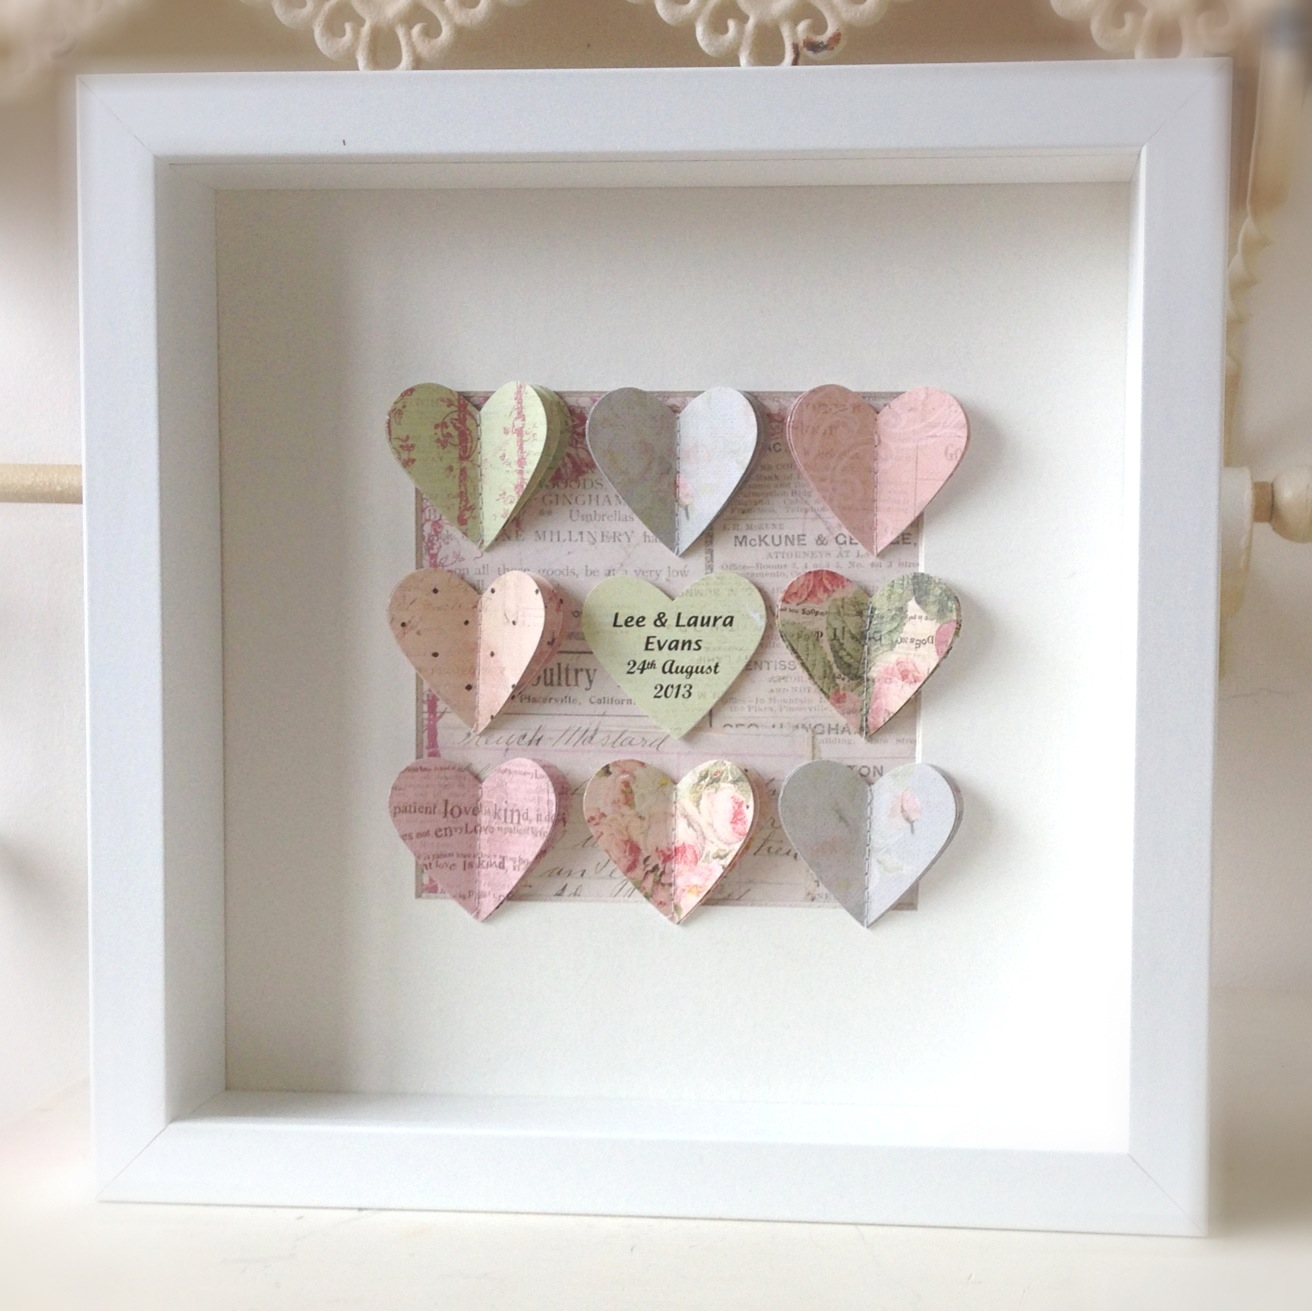 Wedding Gift Shadow Box : ... Imagination: A Wedding Gift.....Personalised Heart Shadow Box